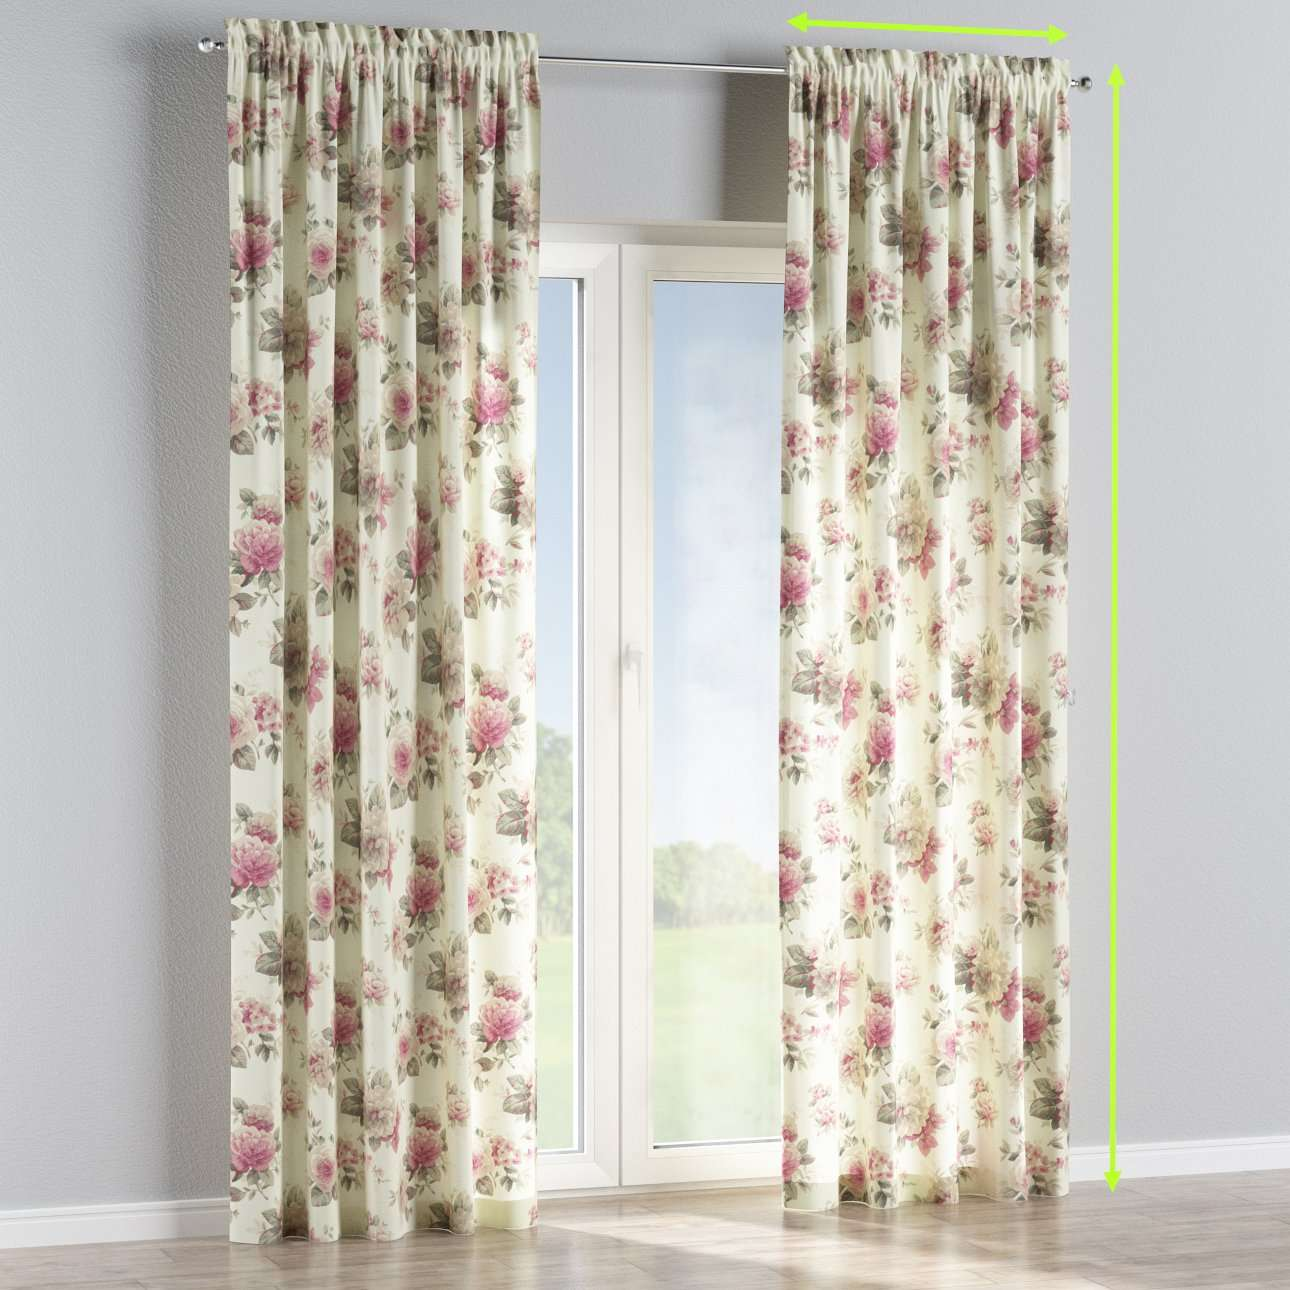 Slot and frill curtains in collection Mirella, fabric: 141-07